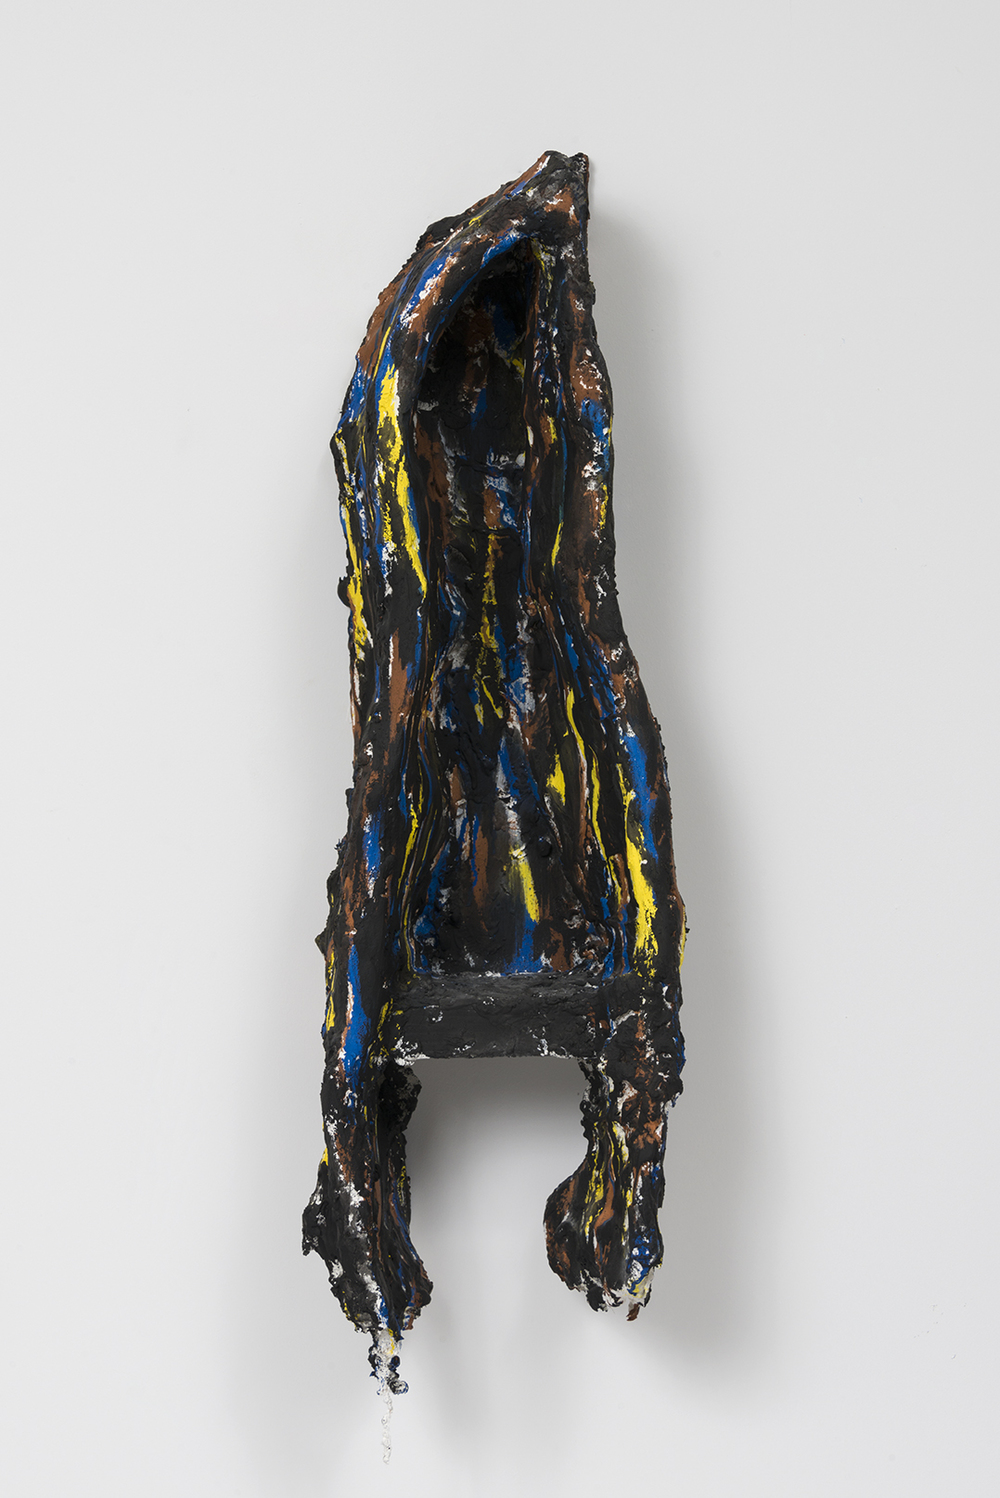 Untitled  Wood, plaster, burlap, chicken wire, and oil enamel.  32 x 9 x 9 inches